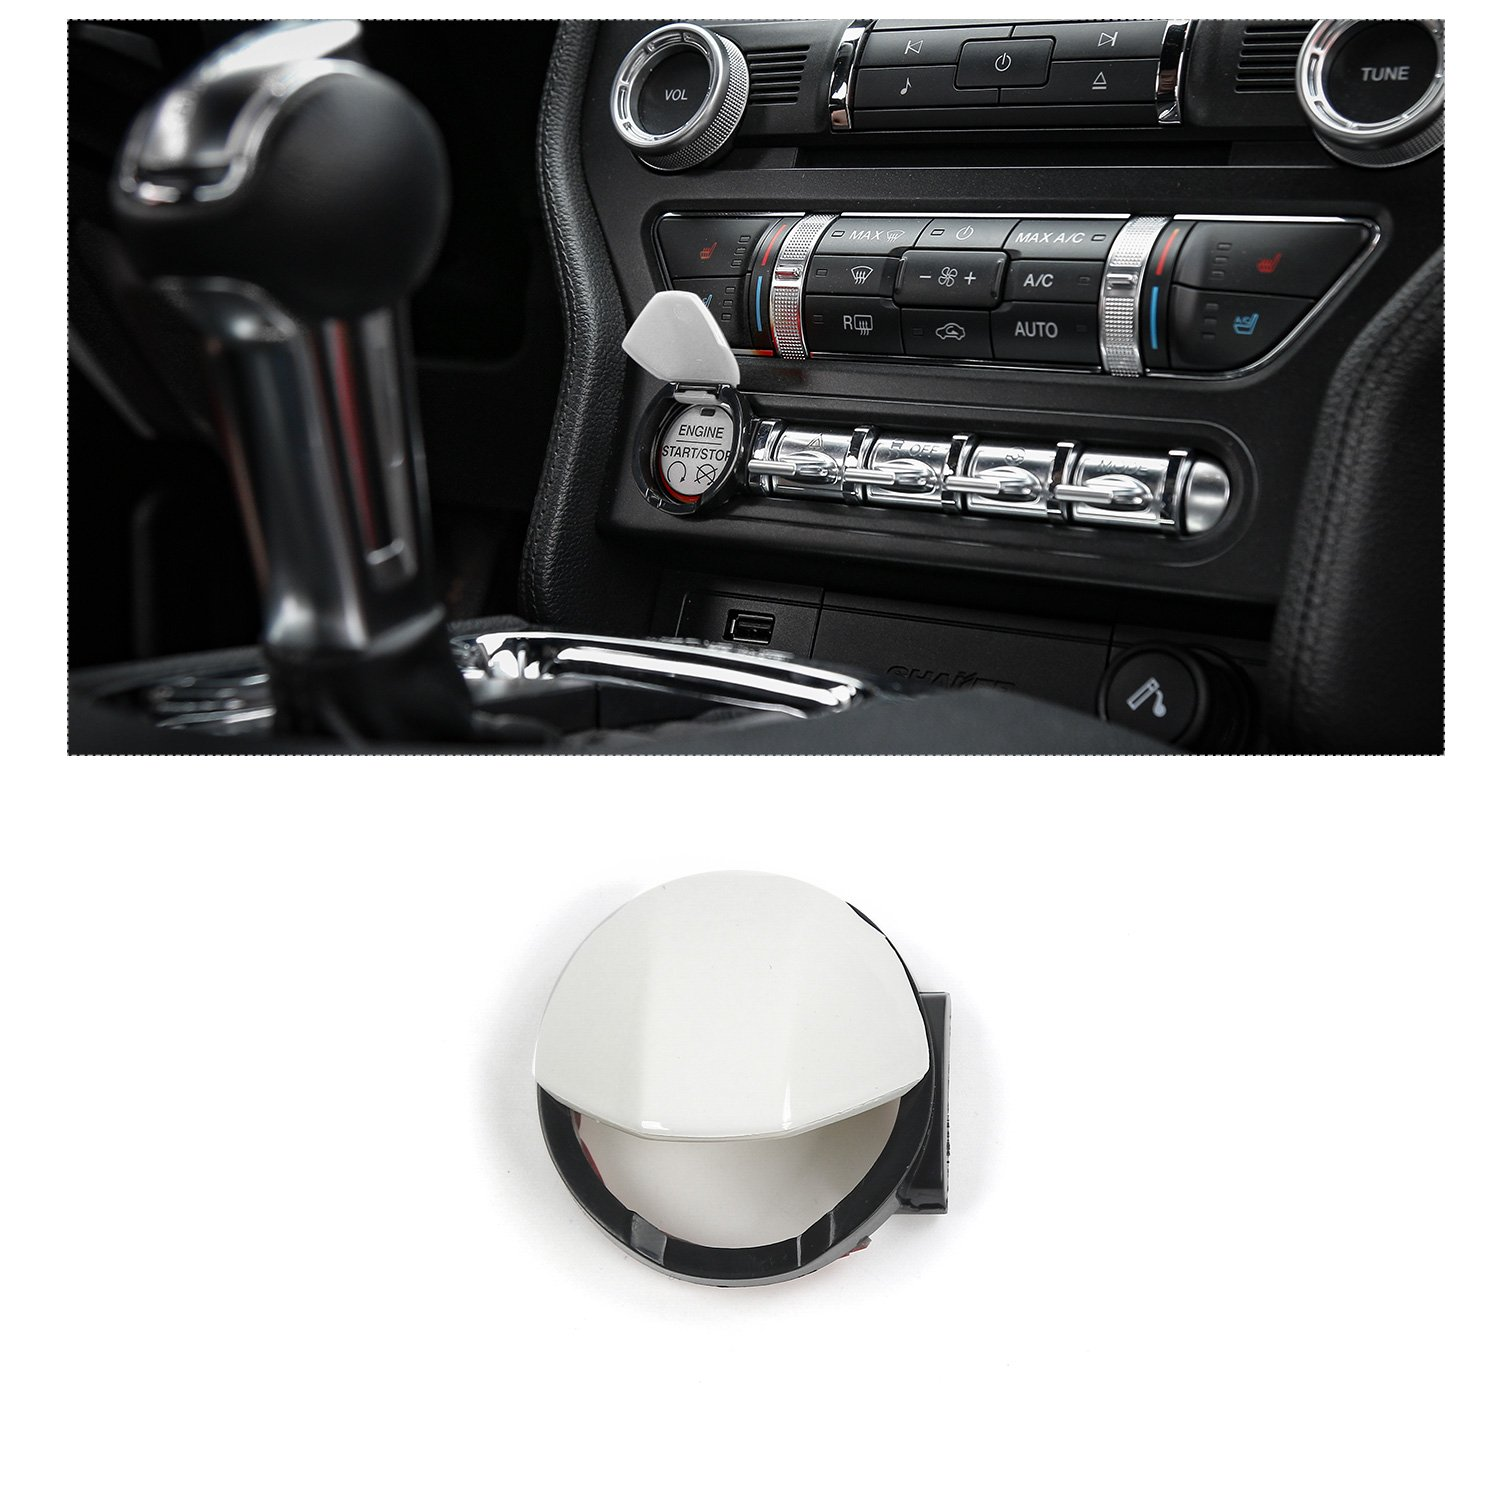 co-pilot位置ストレージボックススイッチボタンカバートリムfor Ford Mustang 2015 Up Engine Start/Stop Button Cover Trim ホワイト RT-YM-01white B07BDFCPST Engine Start/Stop Button Cover Trim|ホワイト ホワイト Engine Start/Stop Button Cover Trim